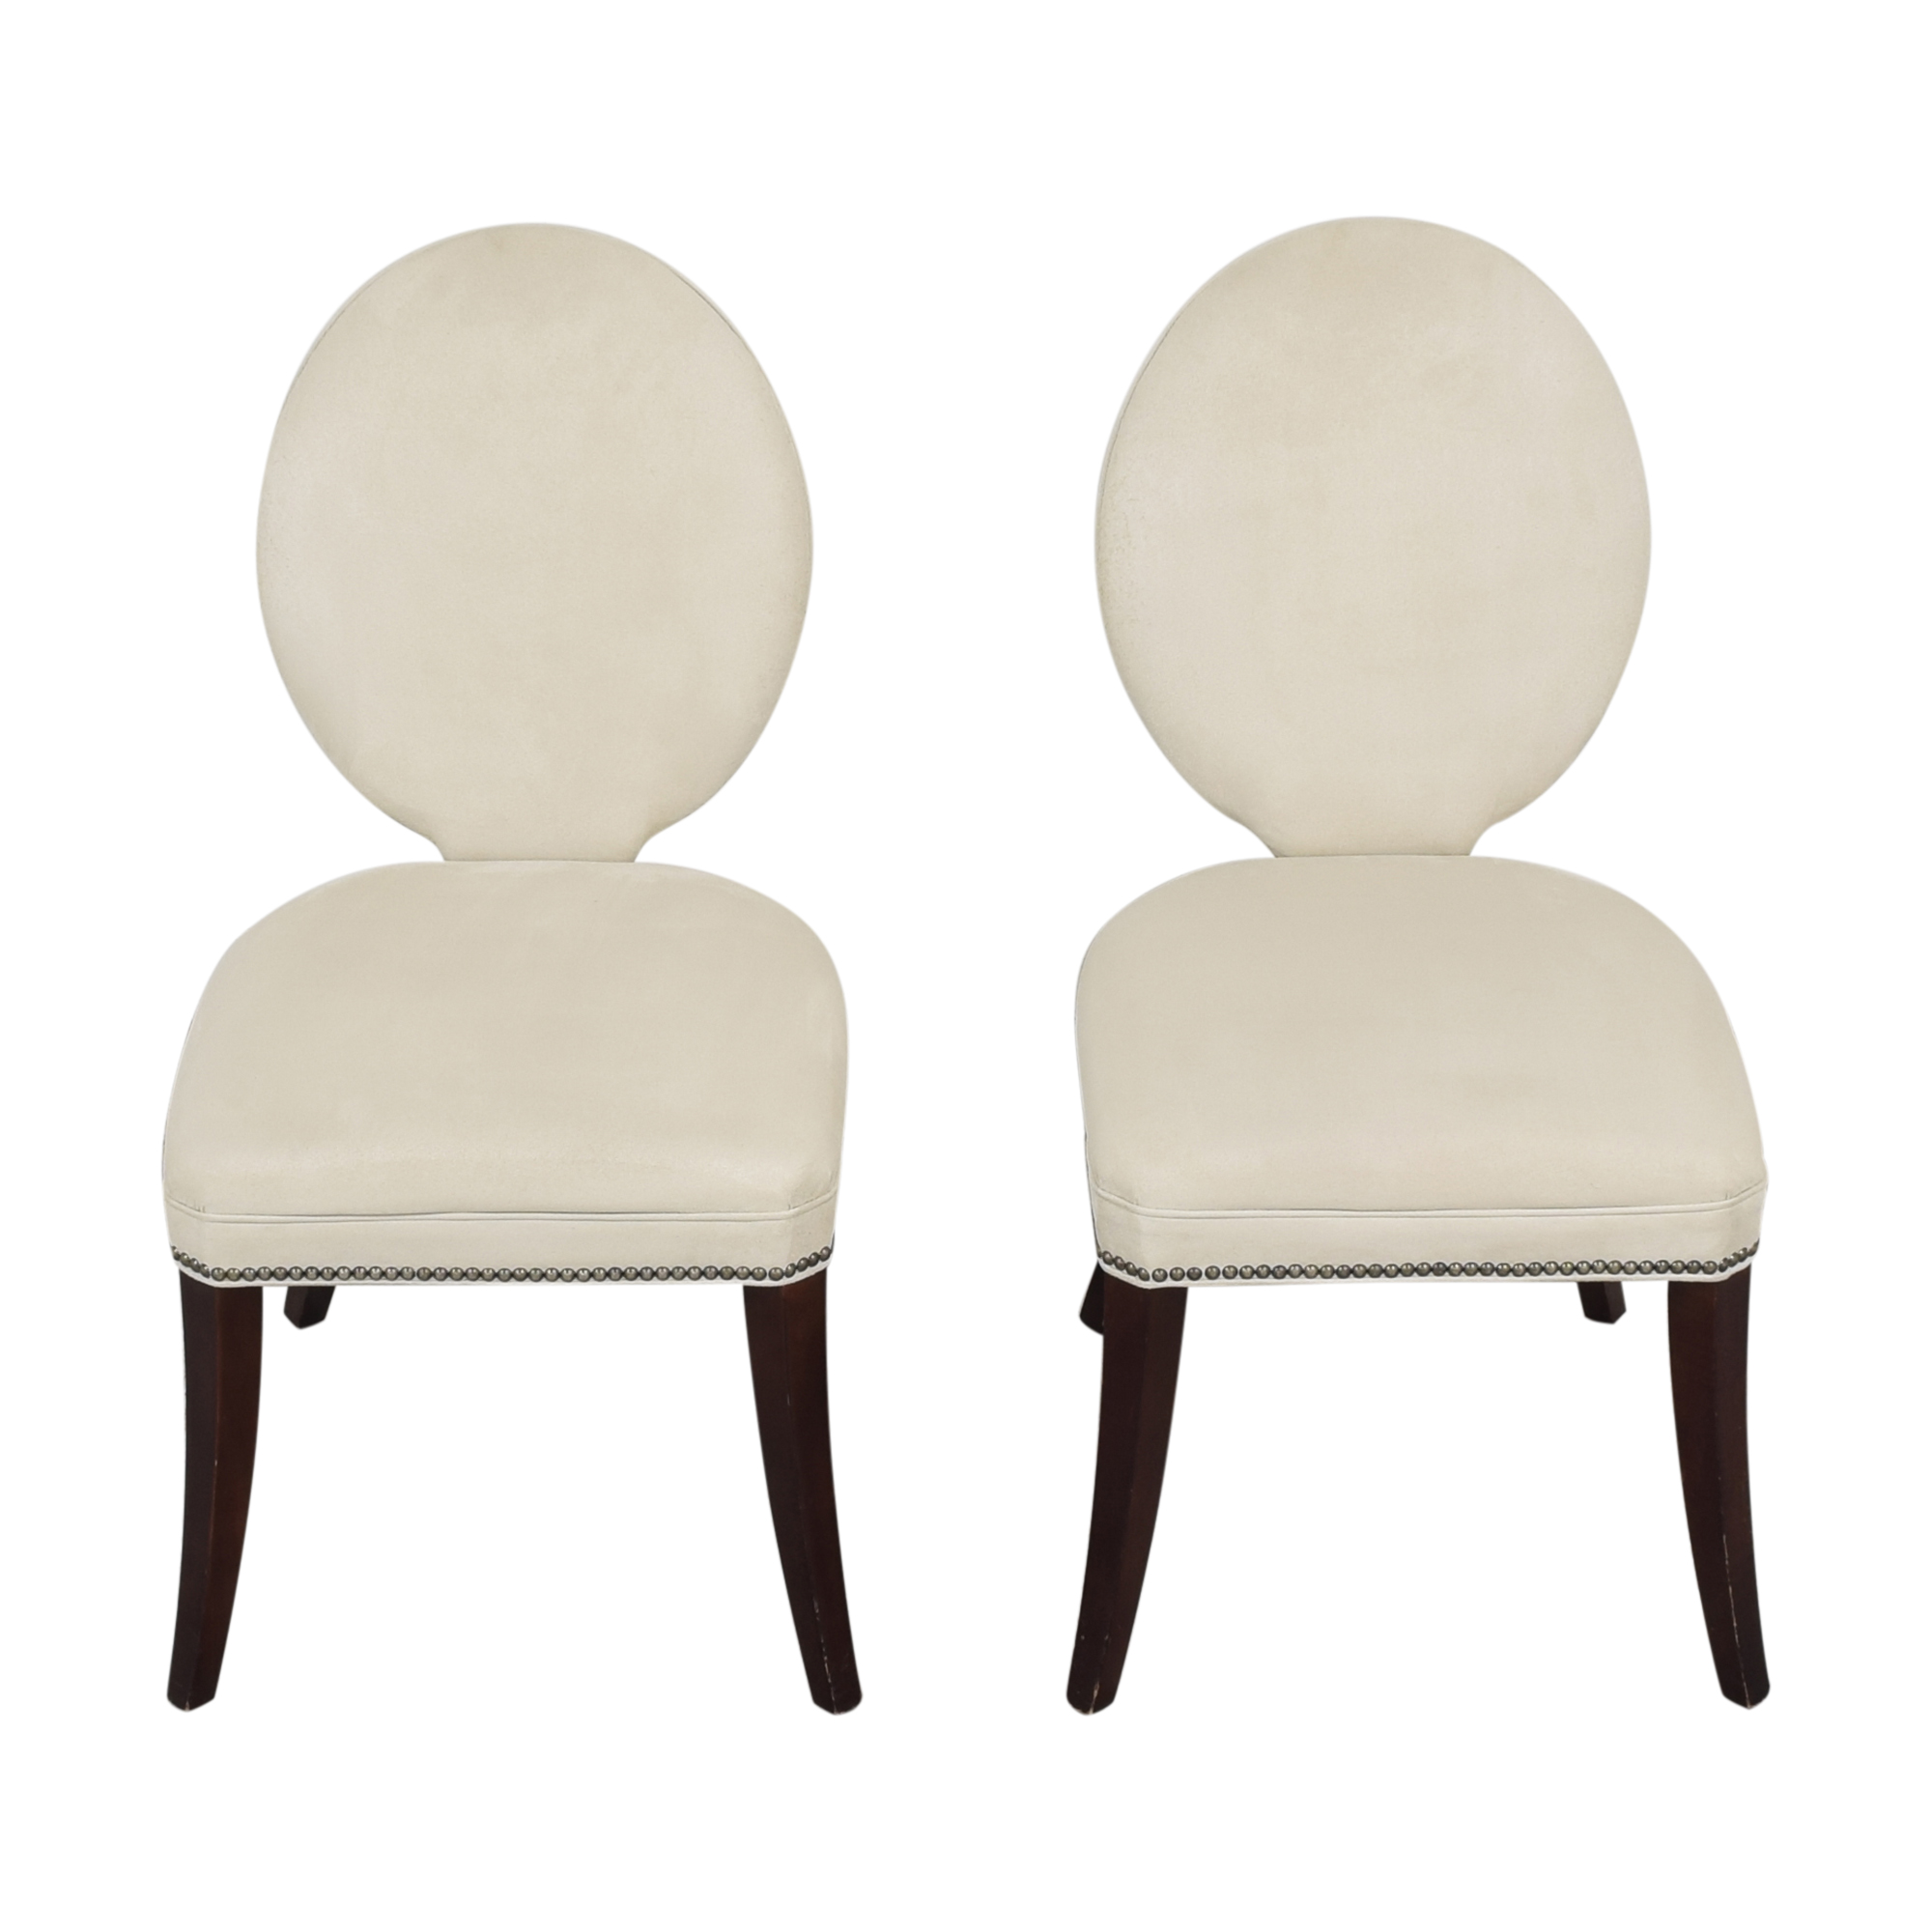 Mitchell Gold + Bob Williams Mitchell Gold + Bob Williams Oval Back Side Chairs pa